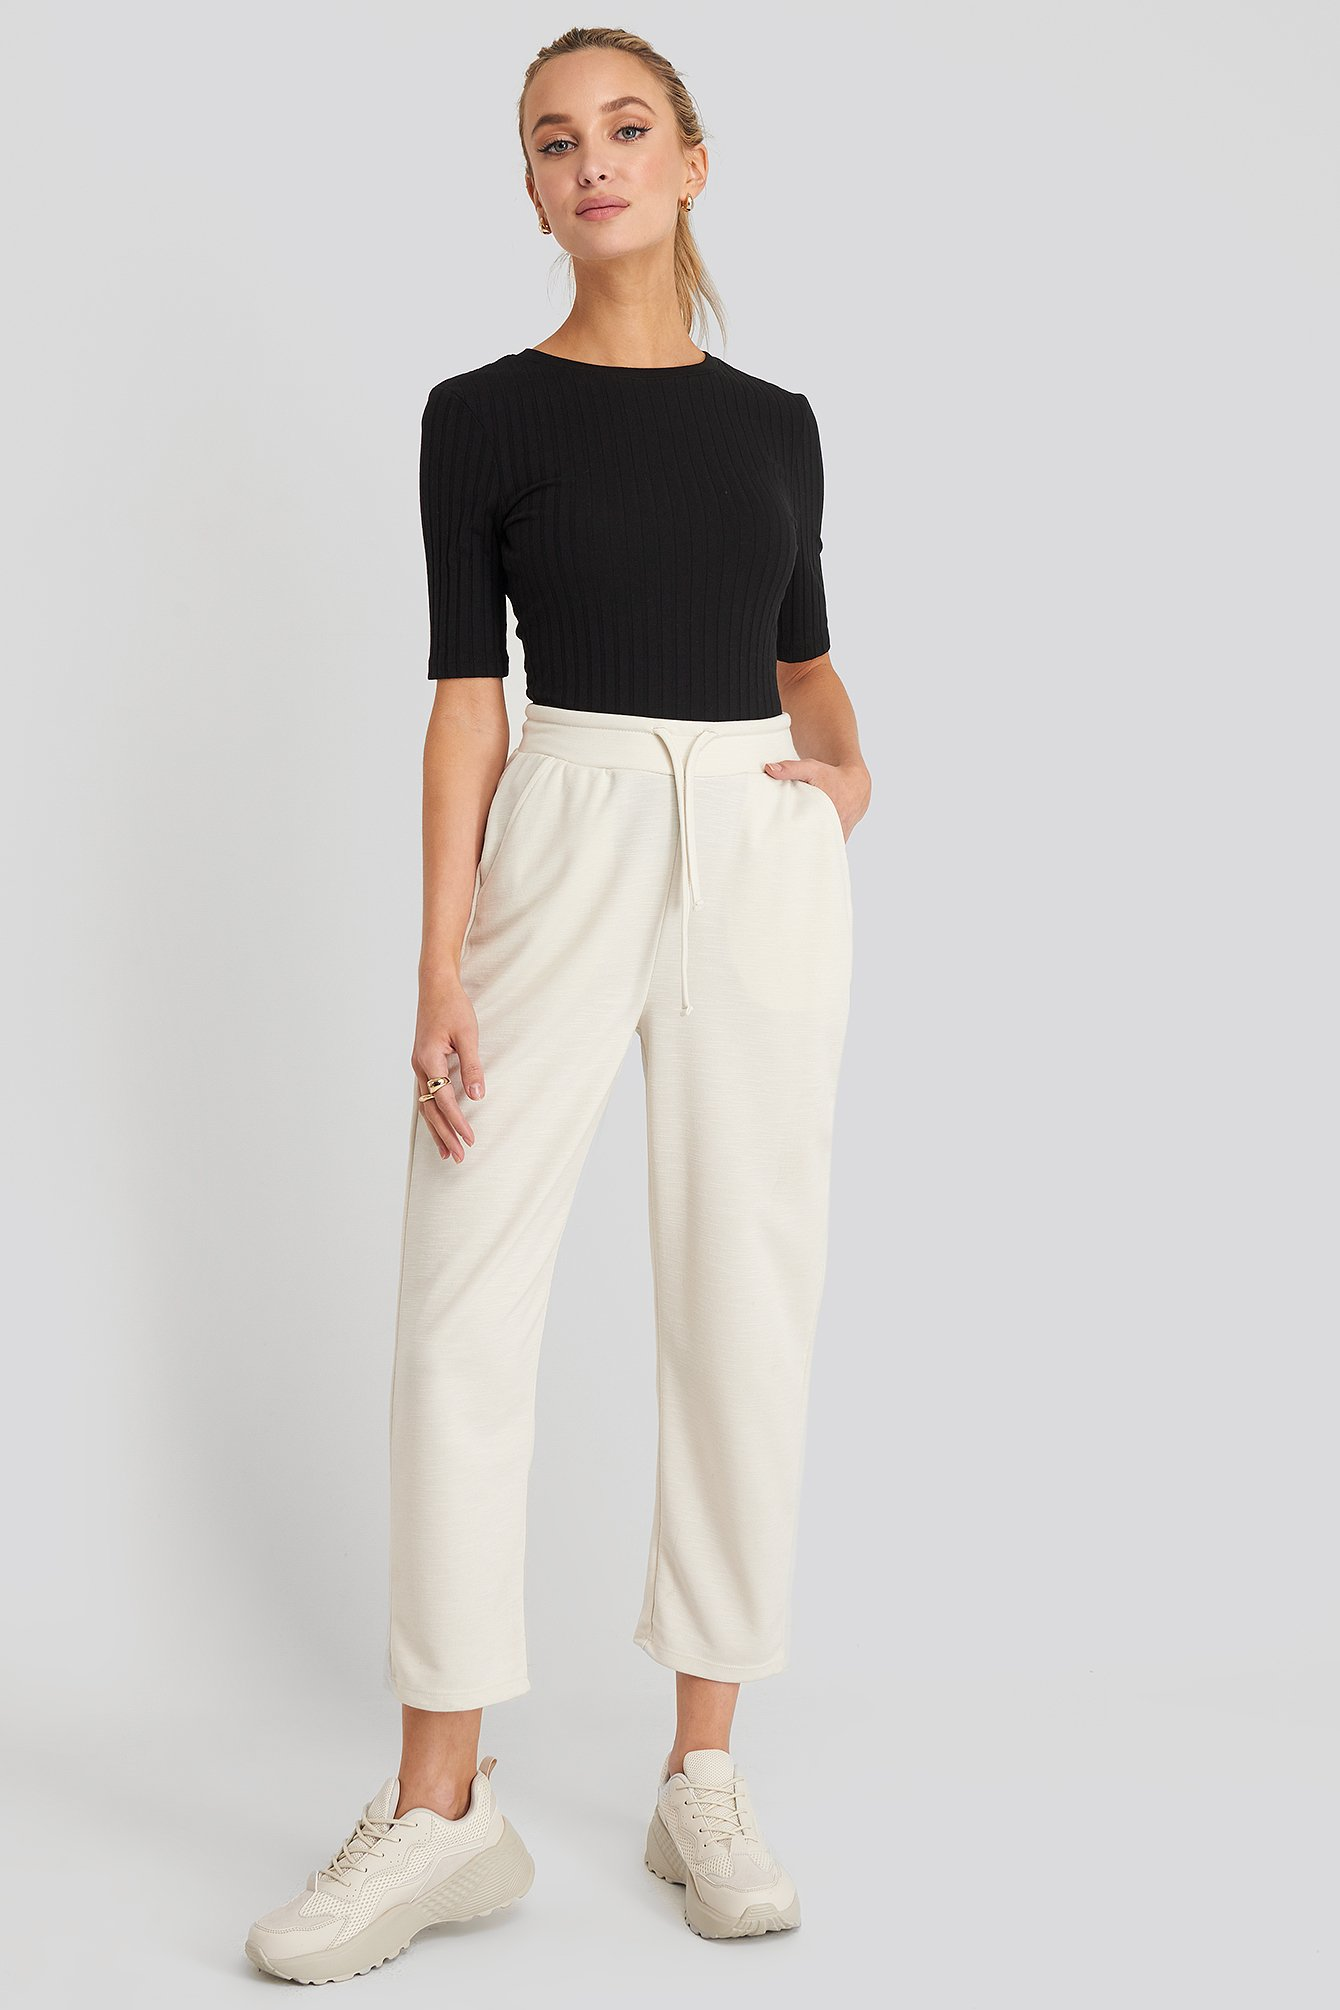 Dusty Light Beige Basic Slip Pants